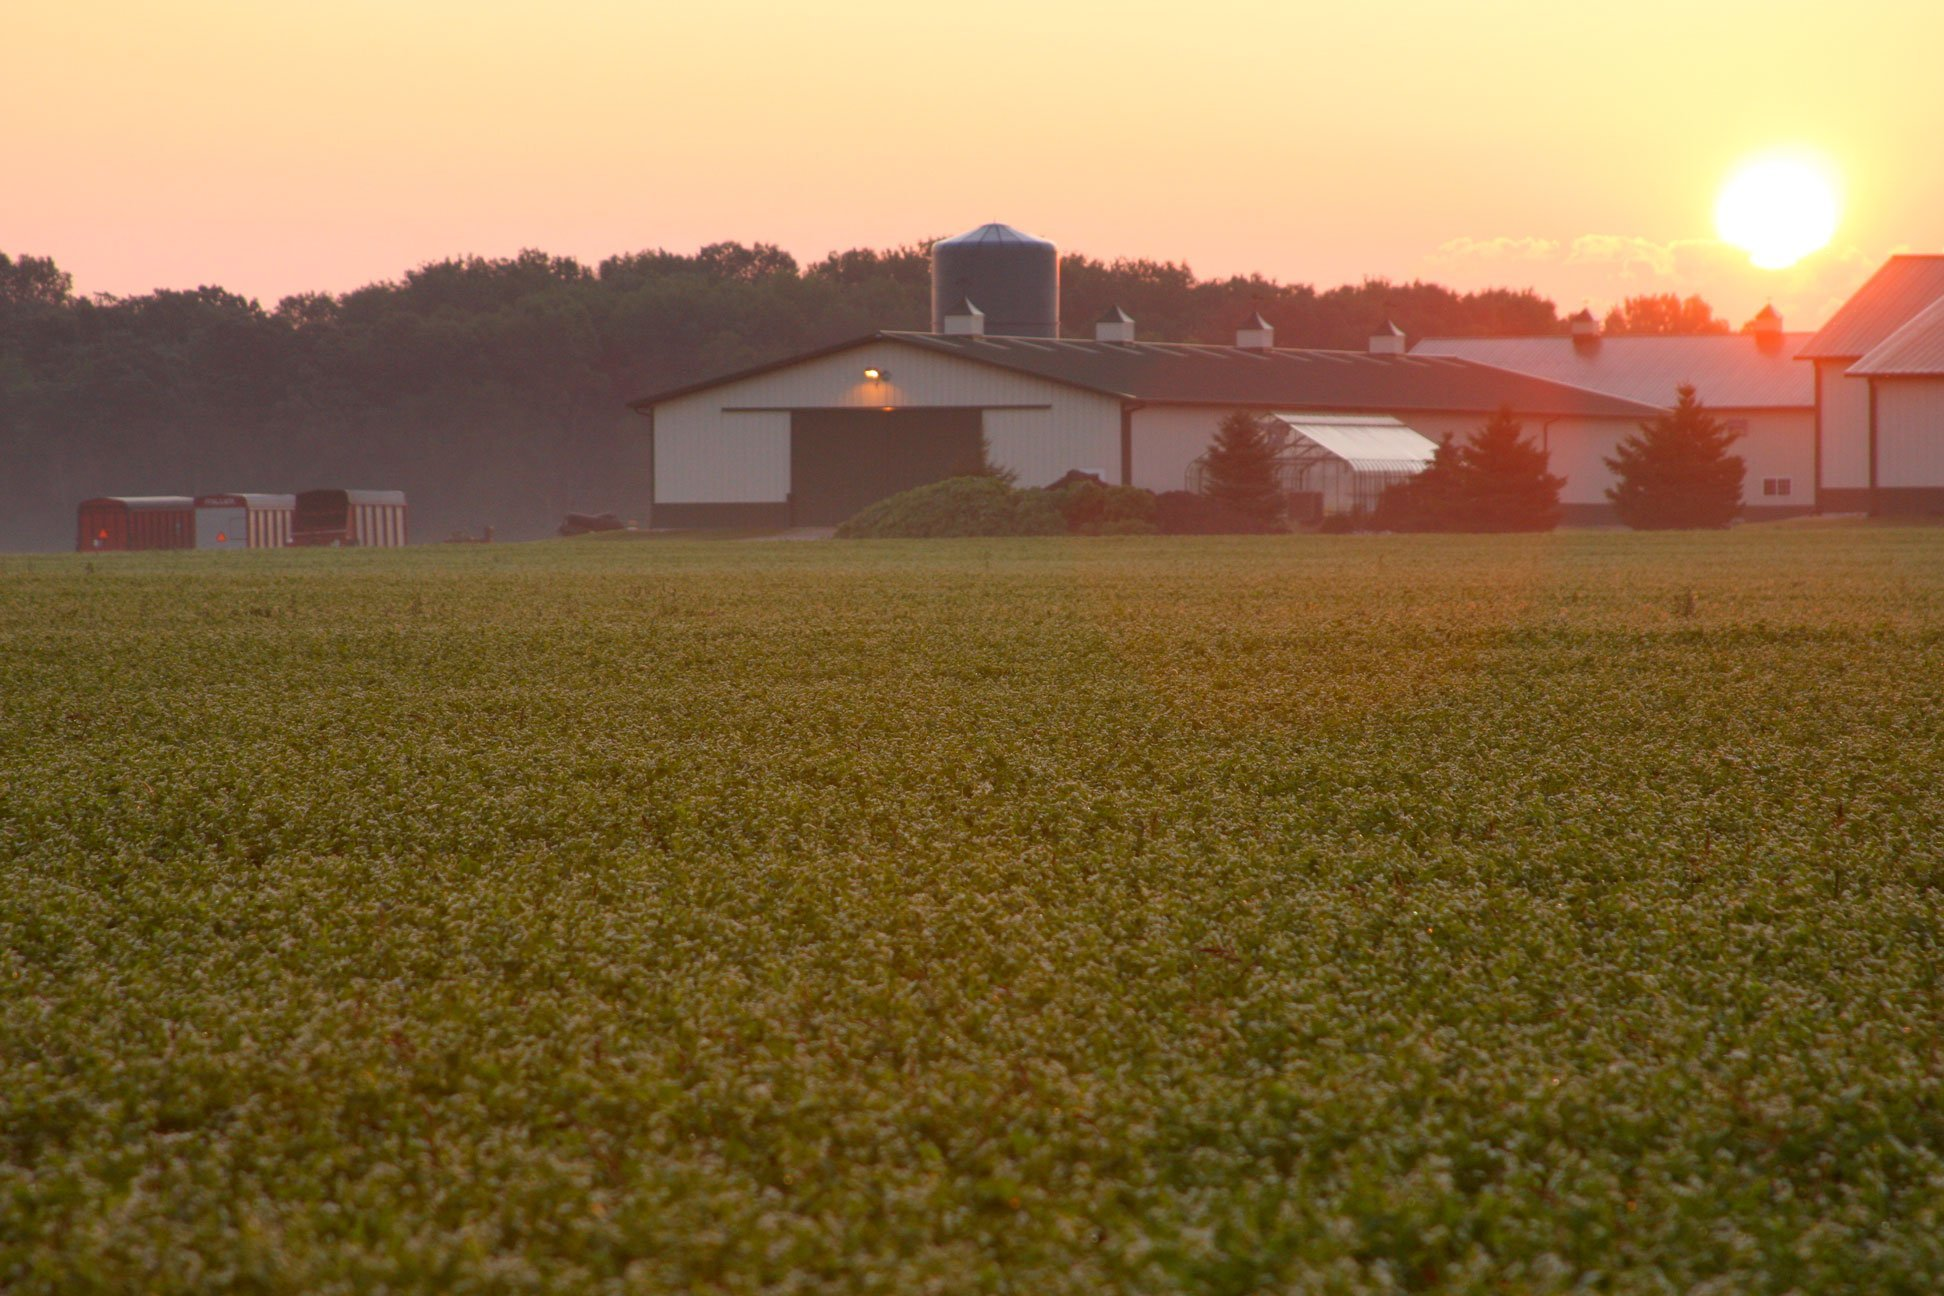 Standard Process - Cellular Vitality - Vitamin B1, B2, B6, Folate, B12, Biotin, CoQ10, Supports Healthy Cellular Processes and Provides Antioxidant Activity, Gluten Free and Vegetarian - 90 Capsules by Standard Process (Image #8)